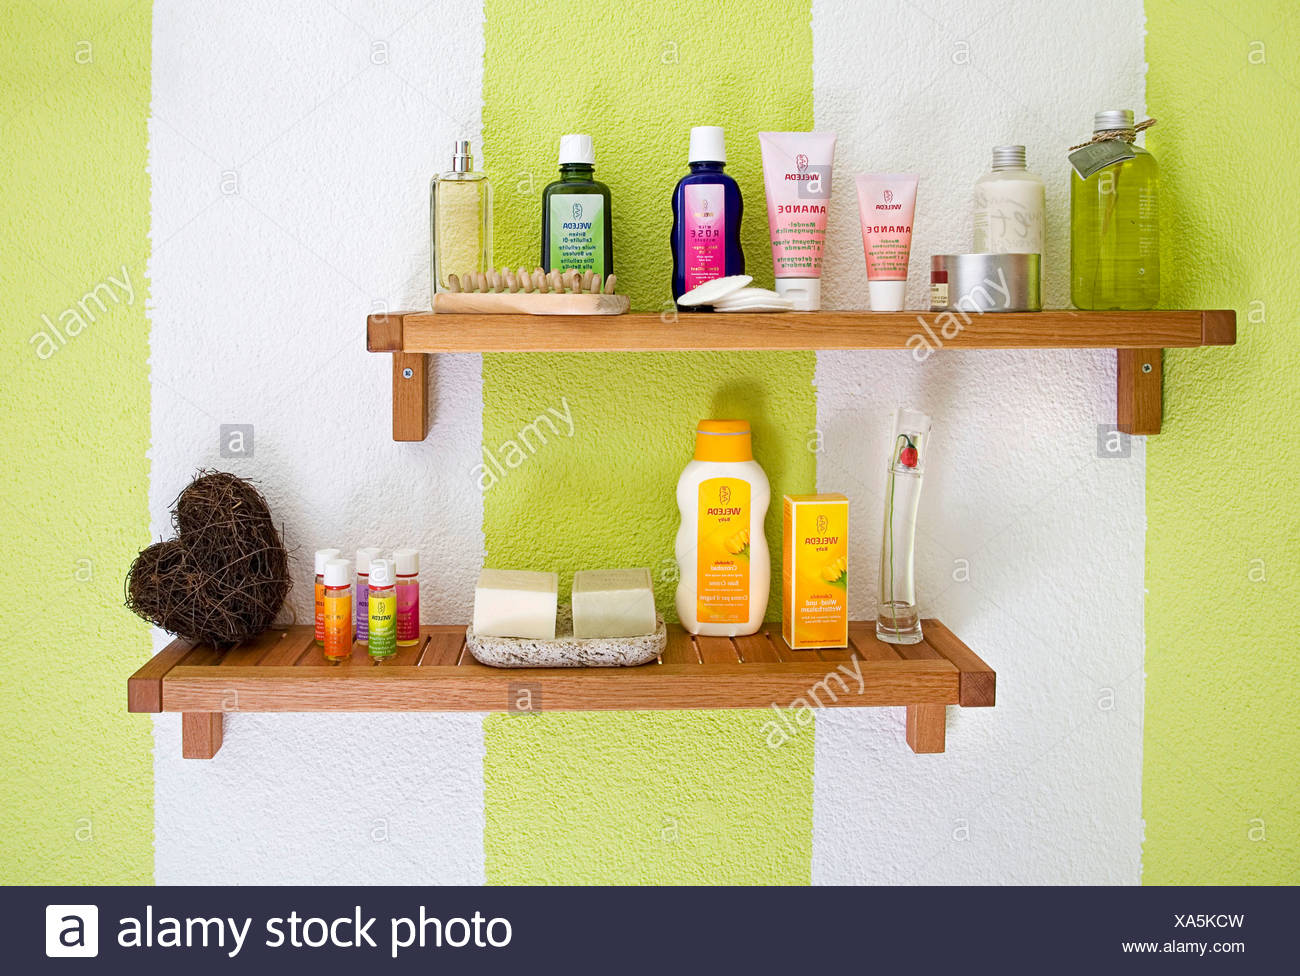 Shelf in a bathroom, body care products Stock Photo